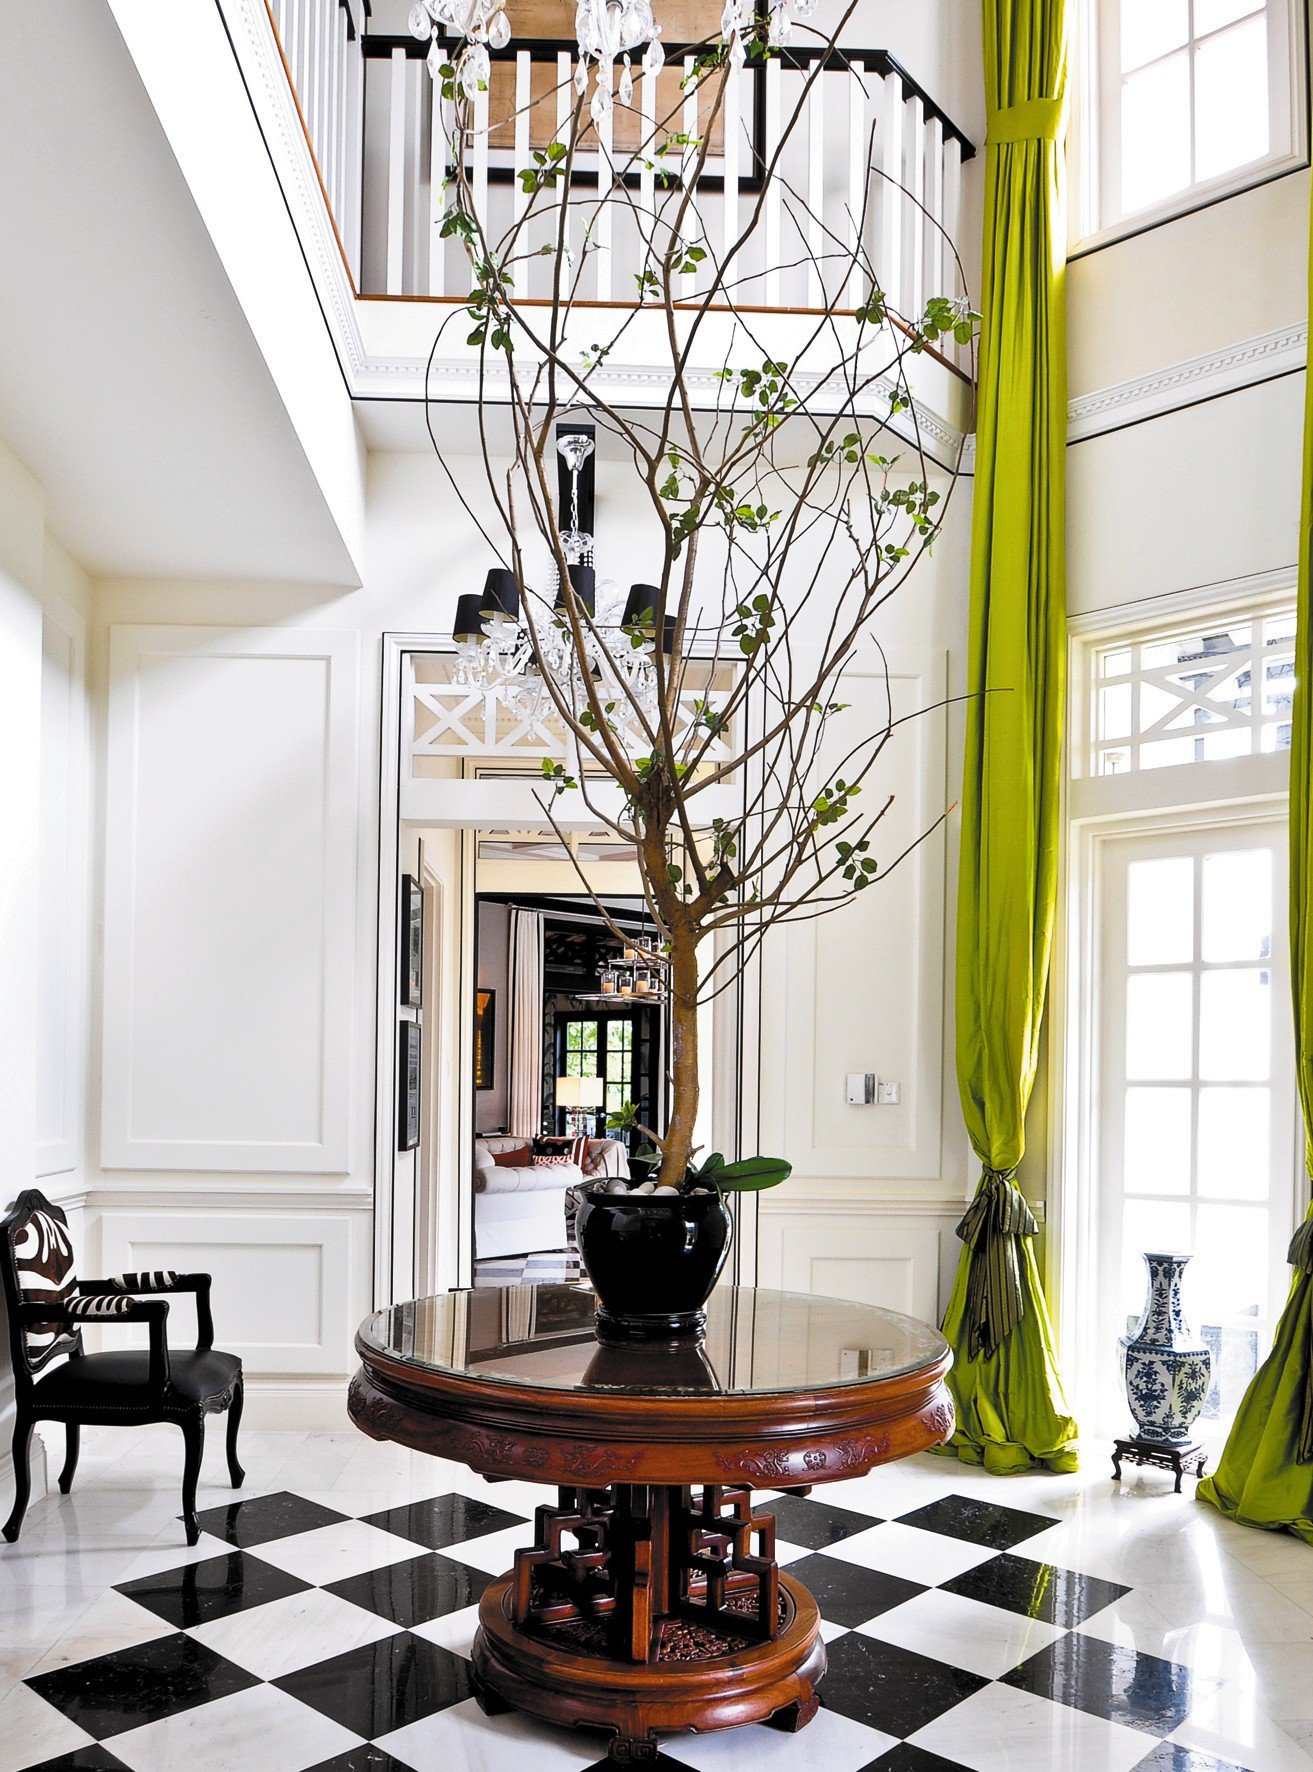 Foyer Table For Church : Foyer in black white and chartreuse interiors by color